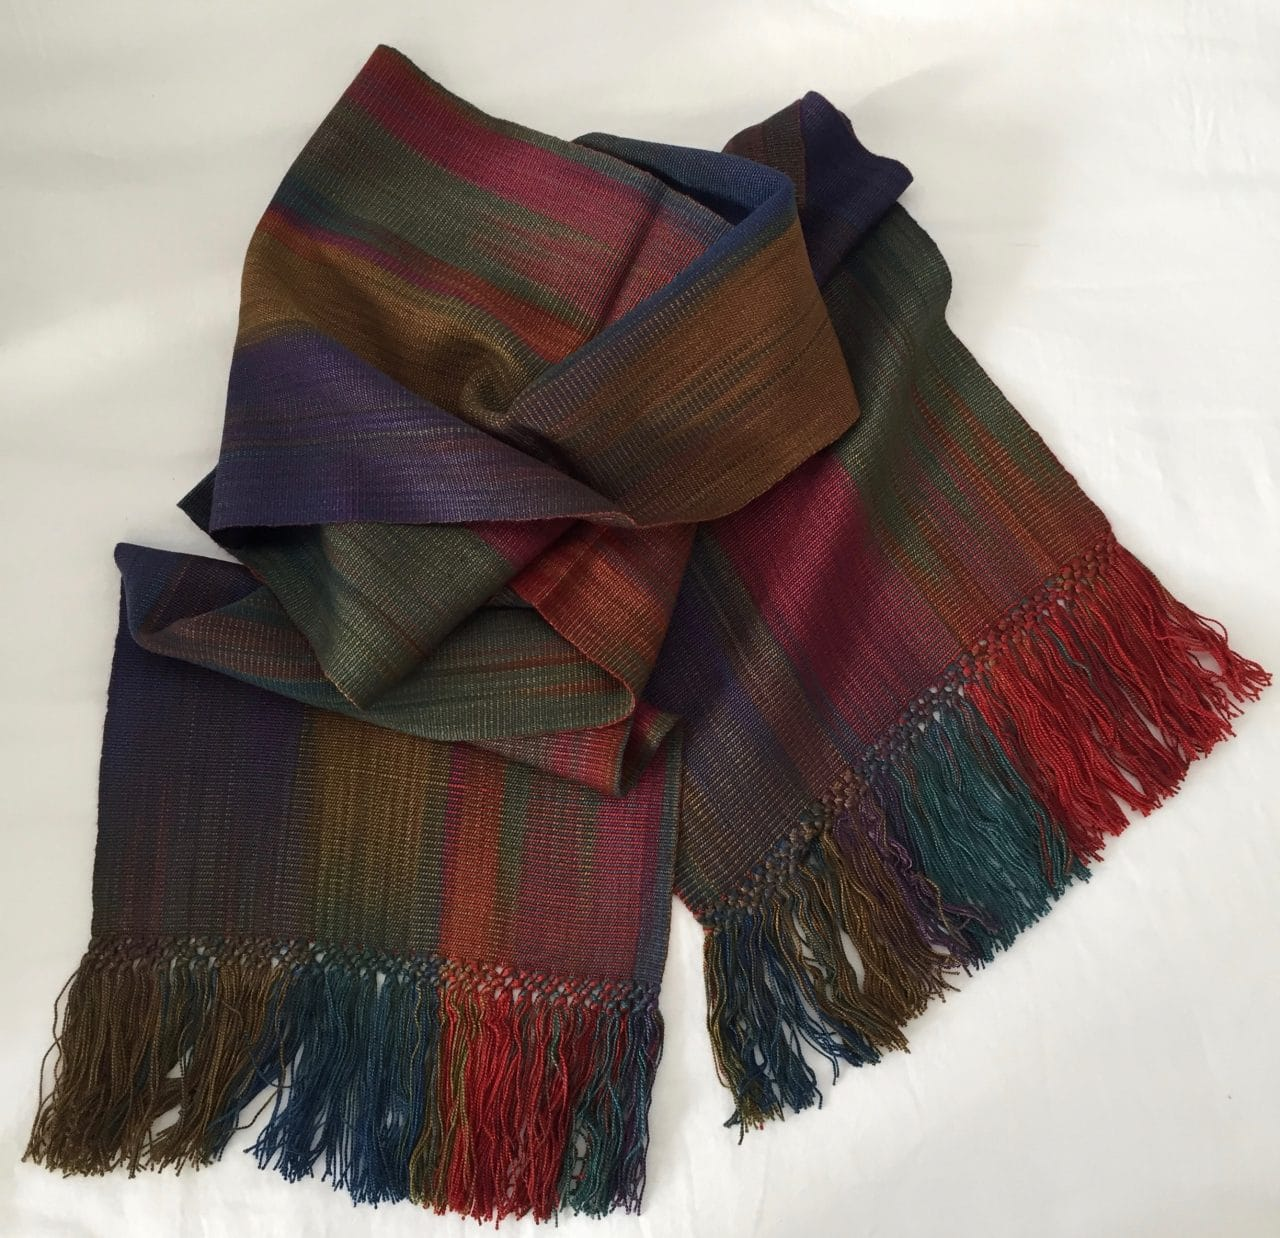 Red, Olive, Brown, Blue, Purple - Lightweight Bamboo Handwoven Scarf 8 x 68